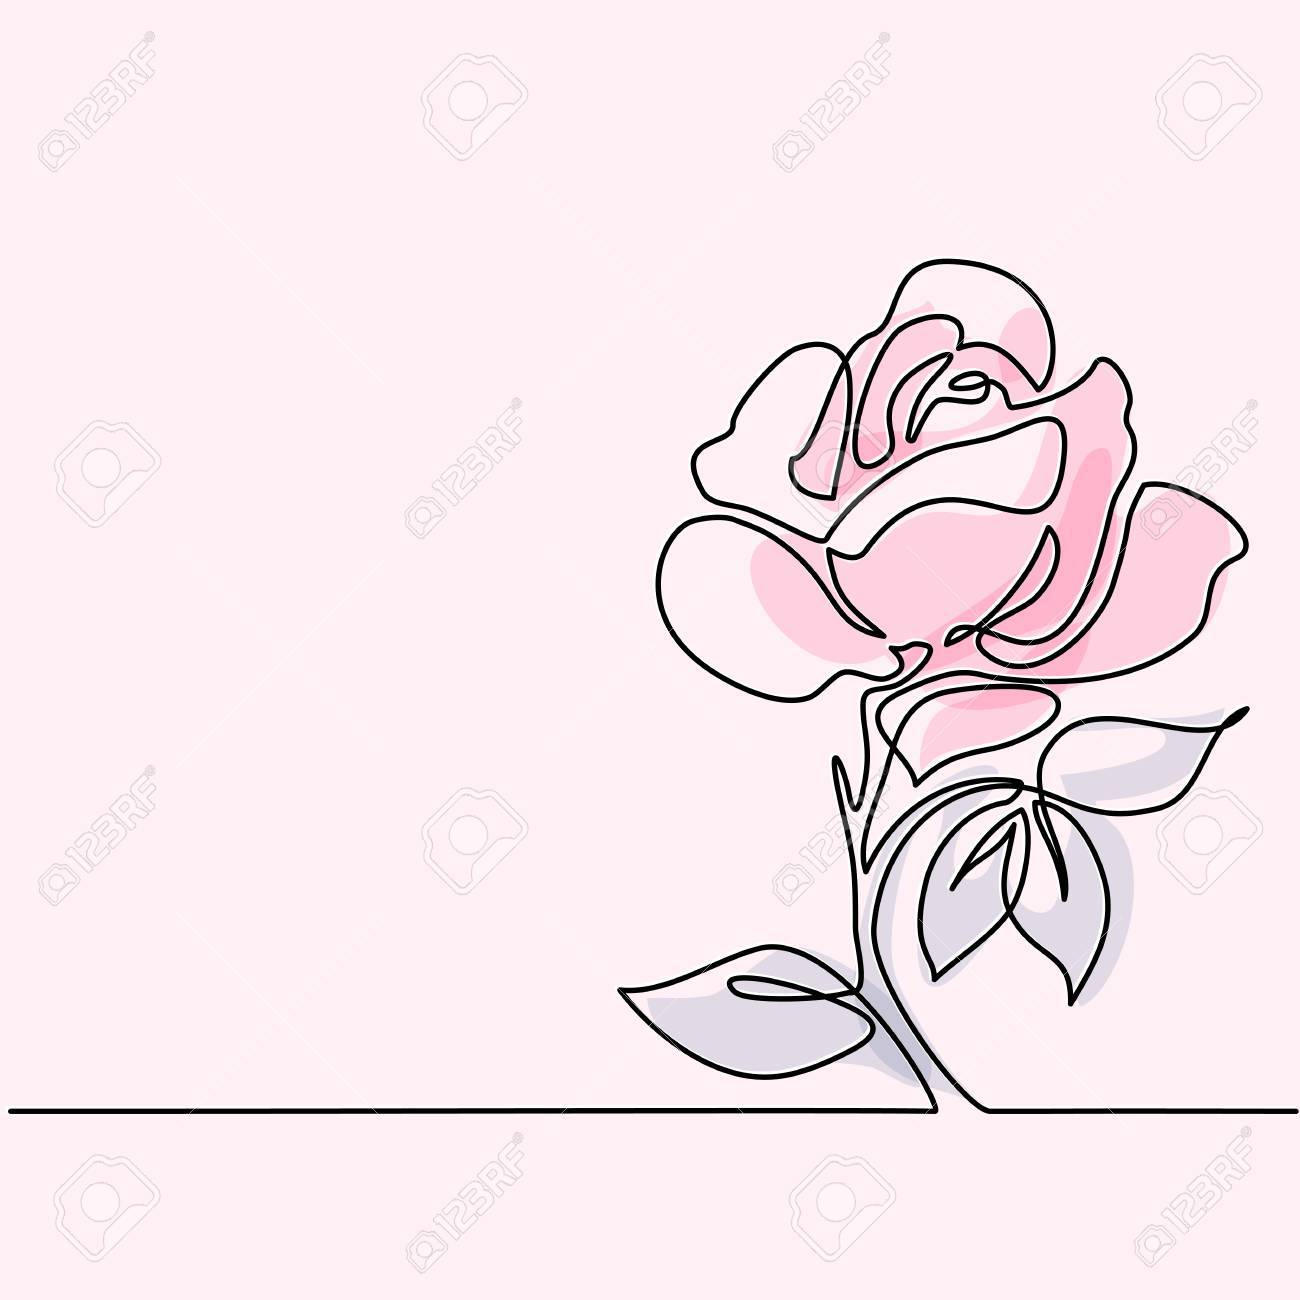 Pink Flower Drawing At Getdrawings Free For Personal Use Pink